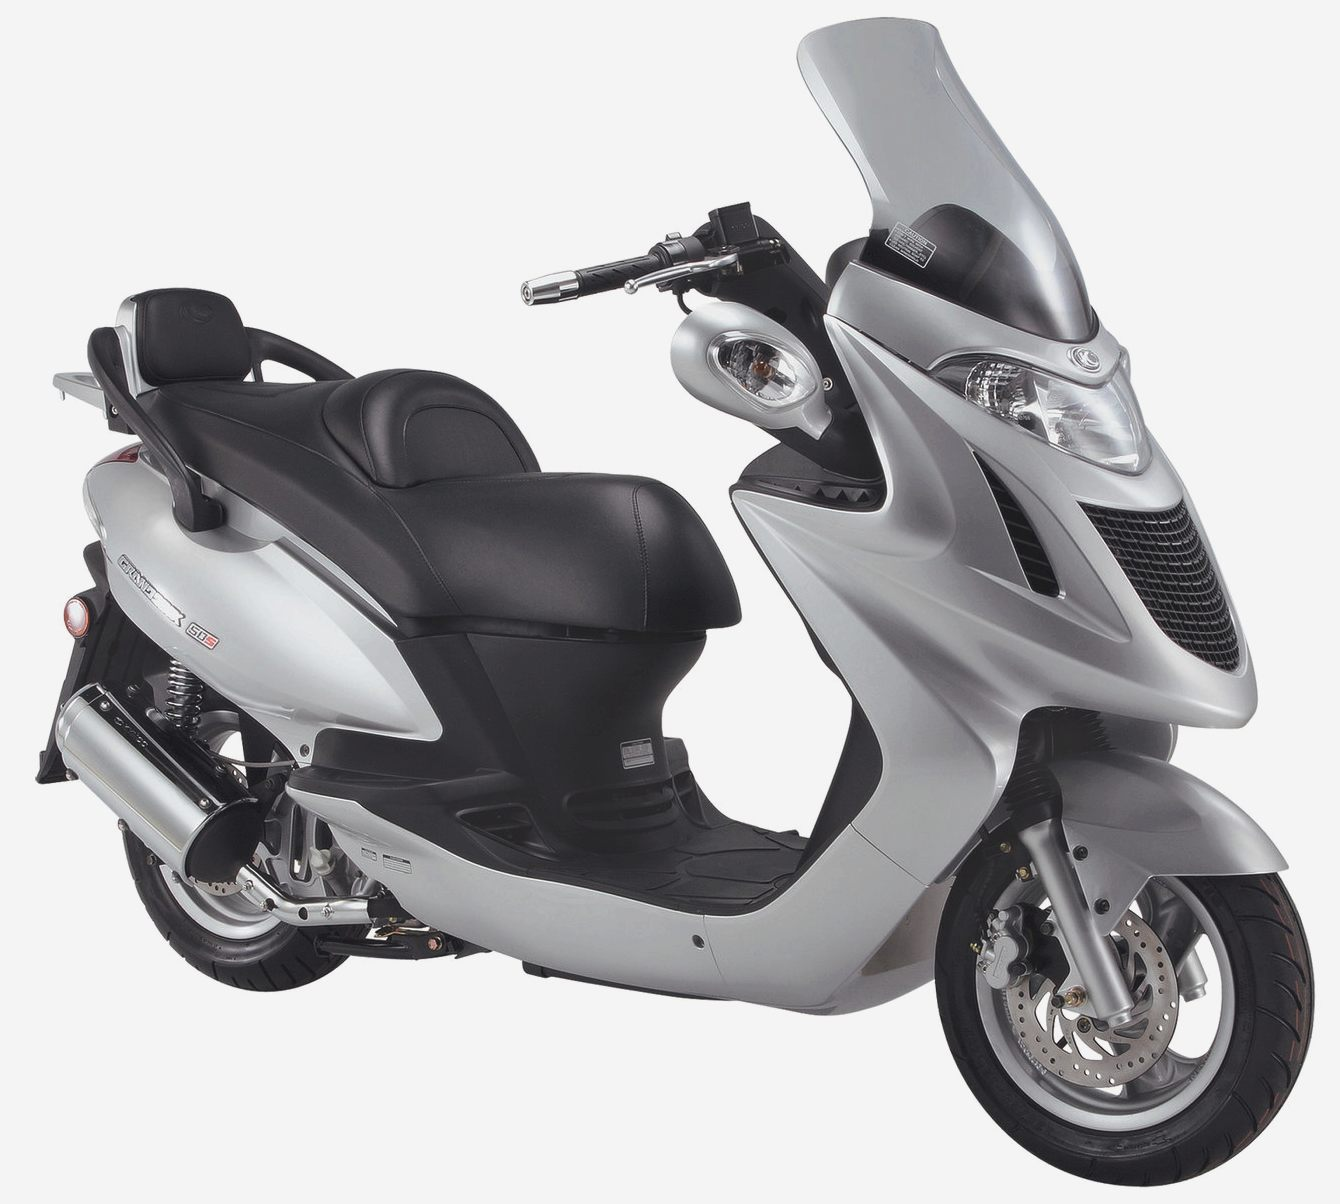 Kymco Grand Dink S 125 images #102185